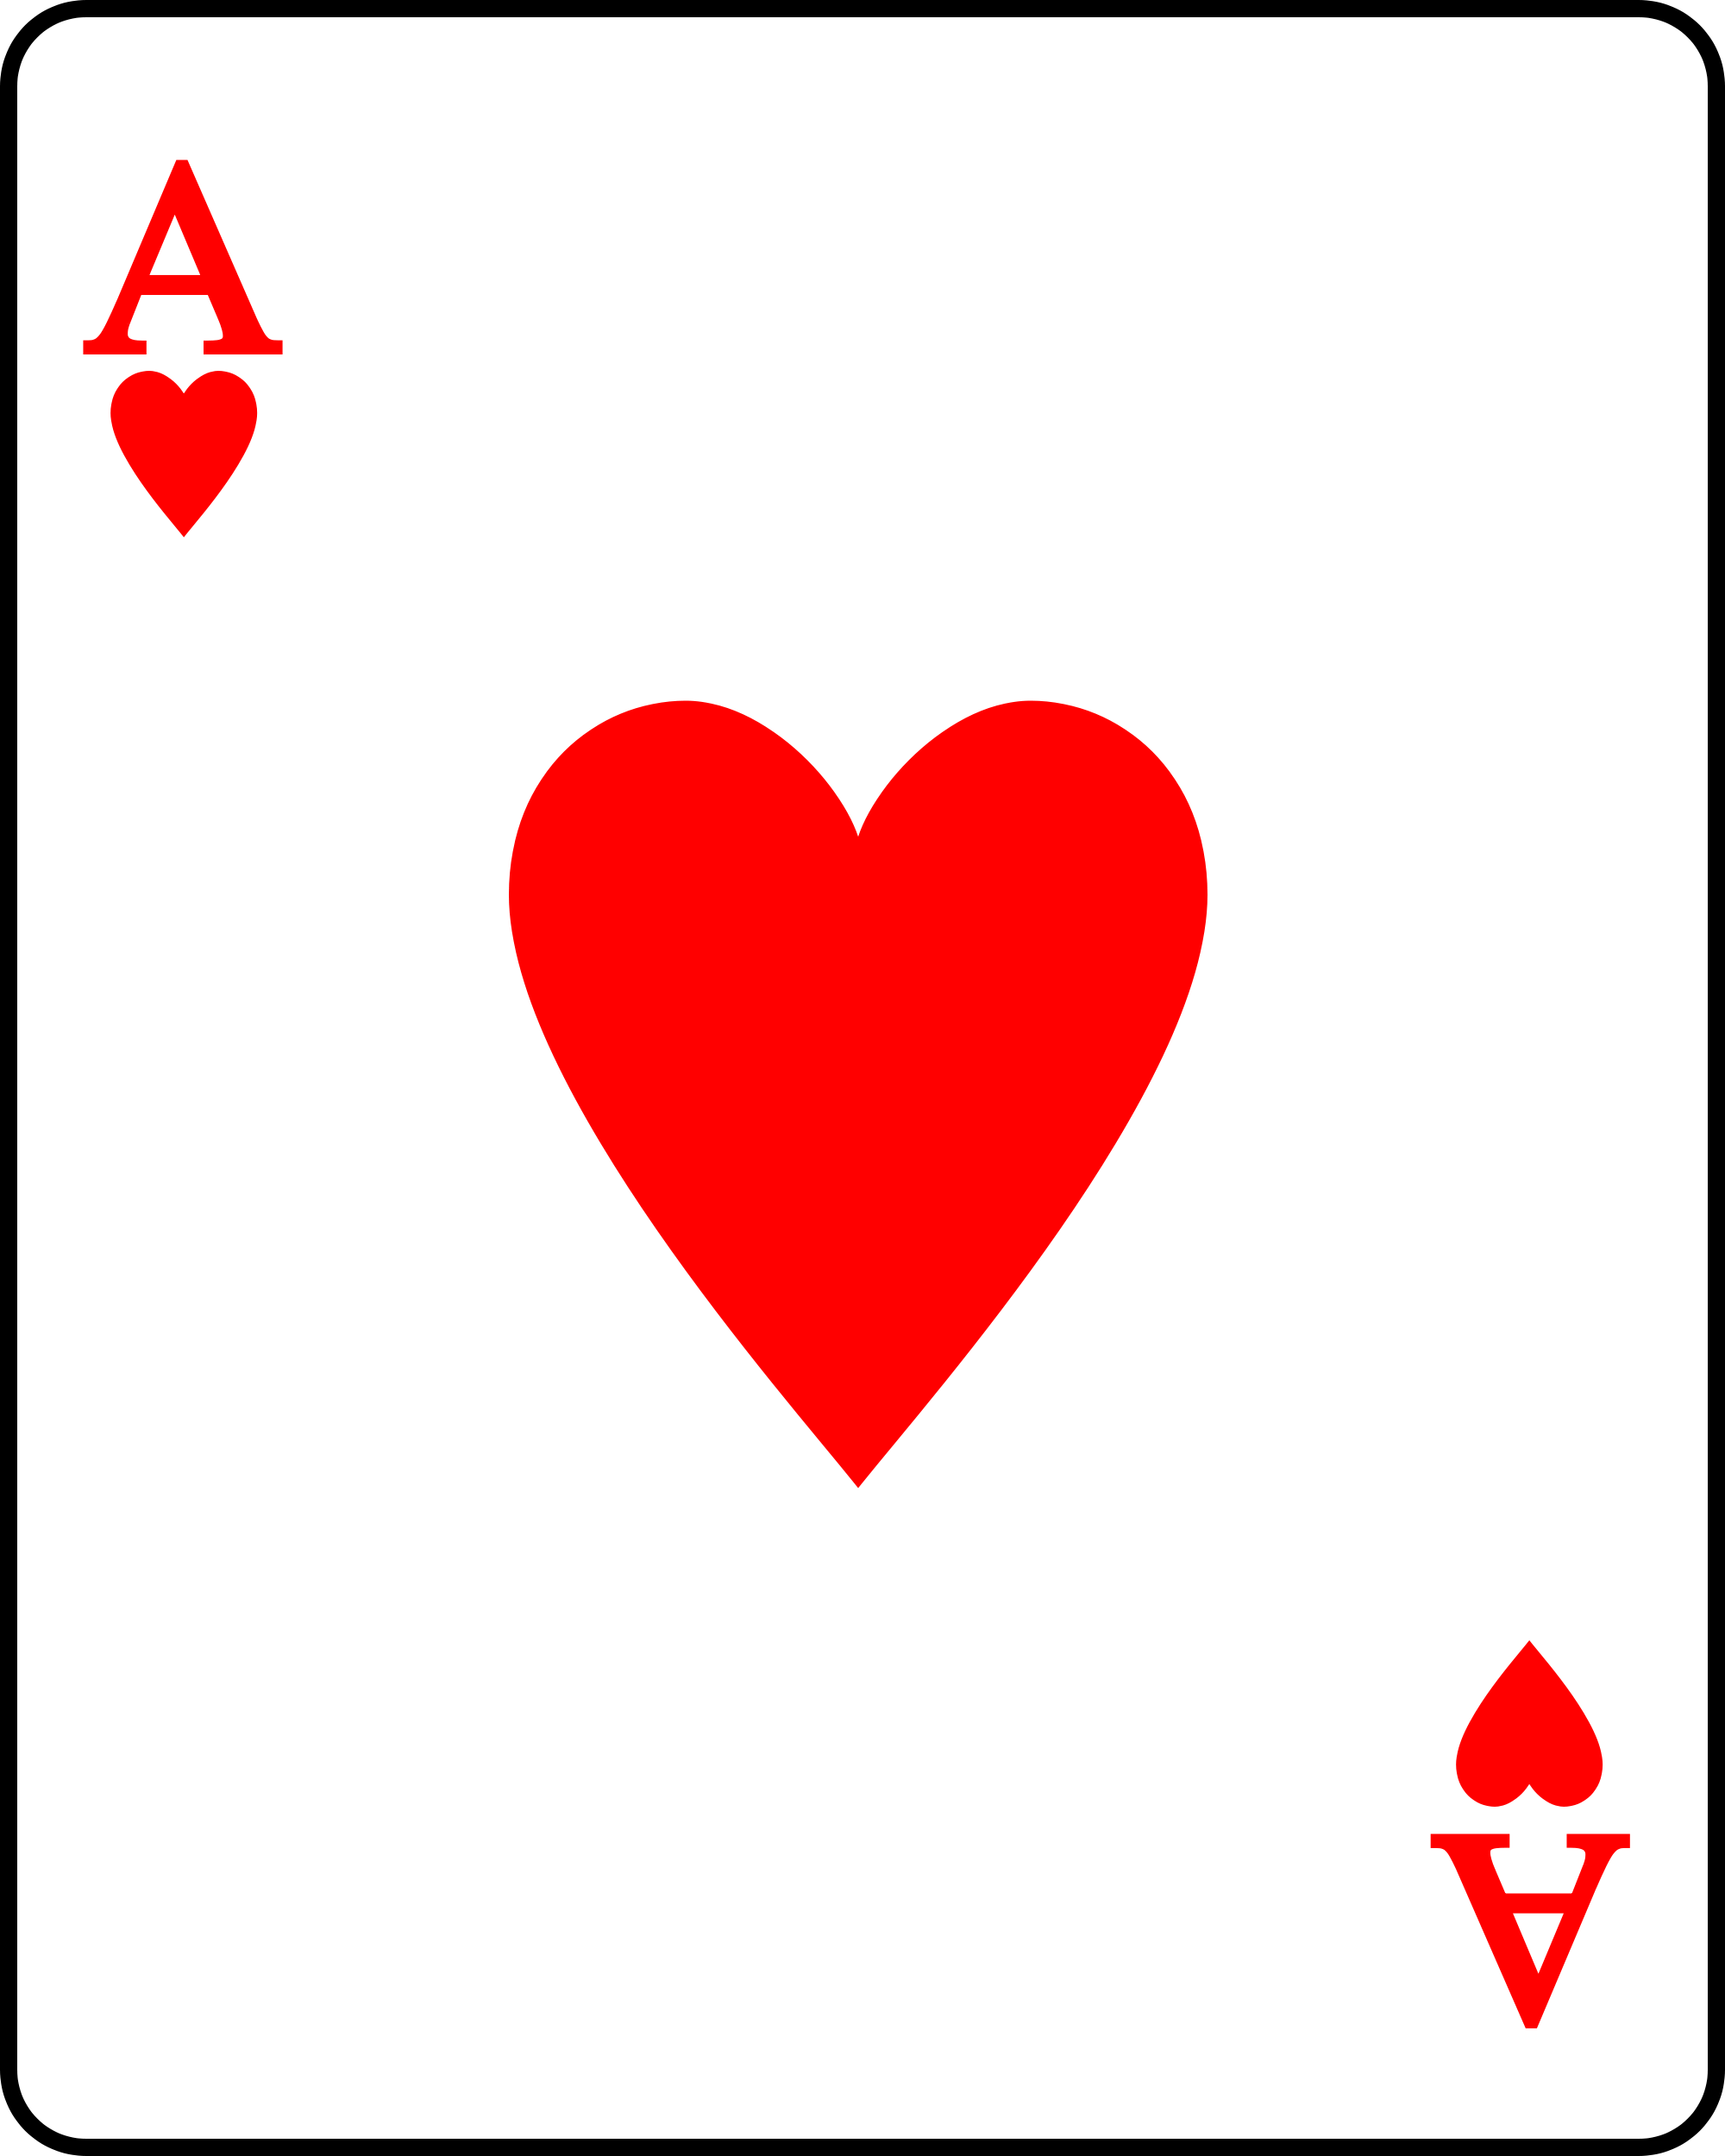 Ace of hearts clipart picture freeuse stock Ace Hearts Card - ClipArt Best picture freeuse stock